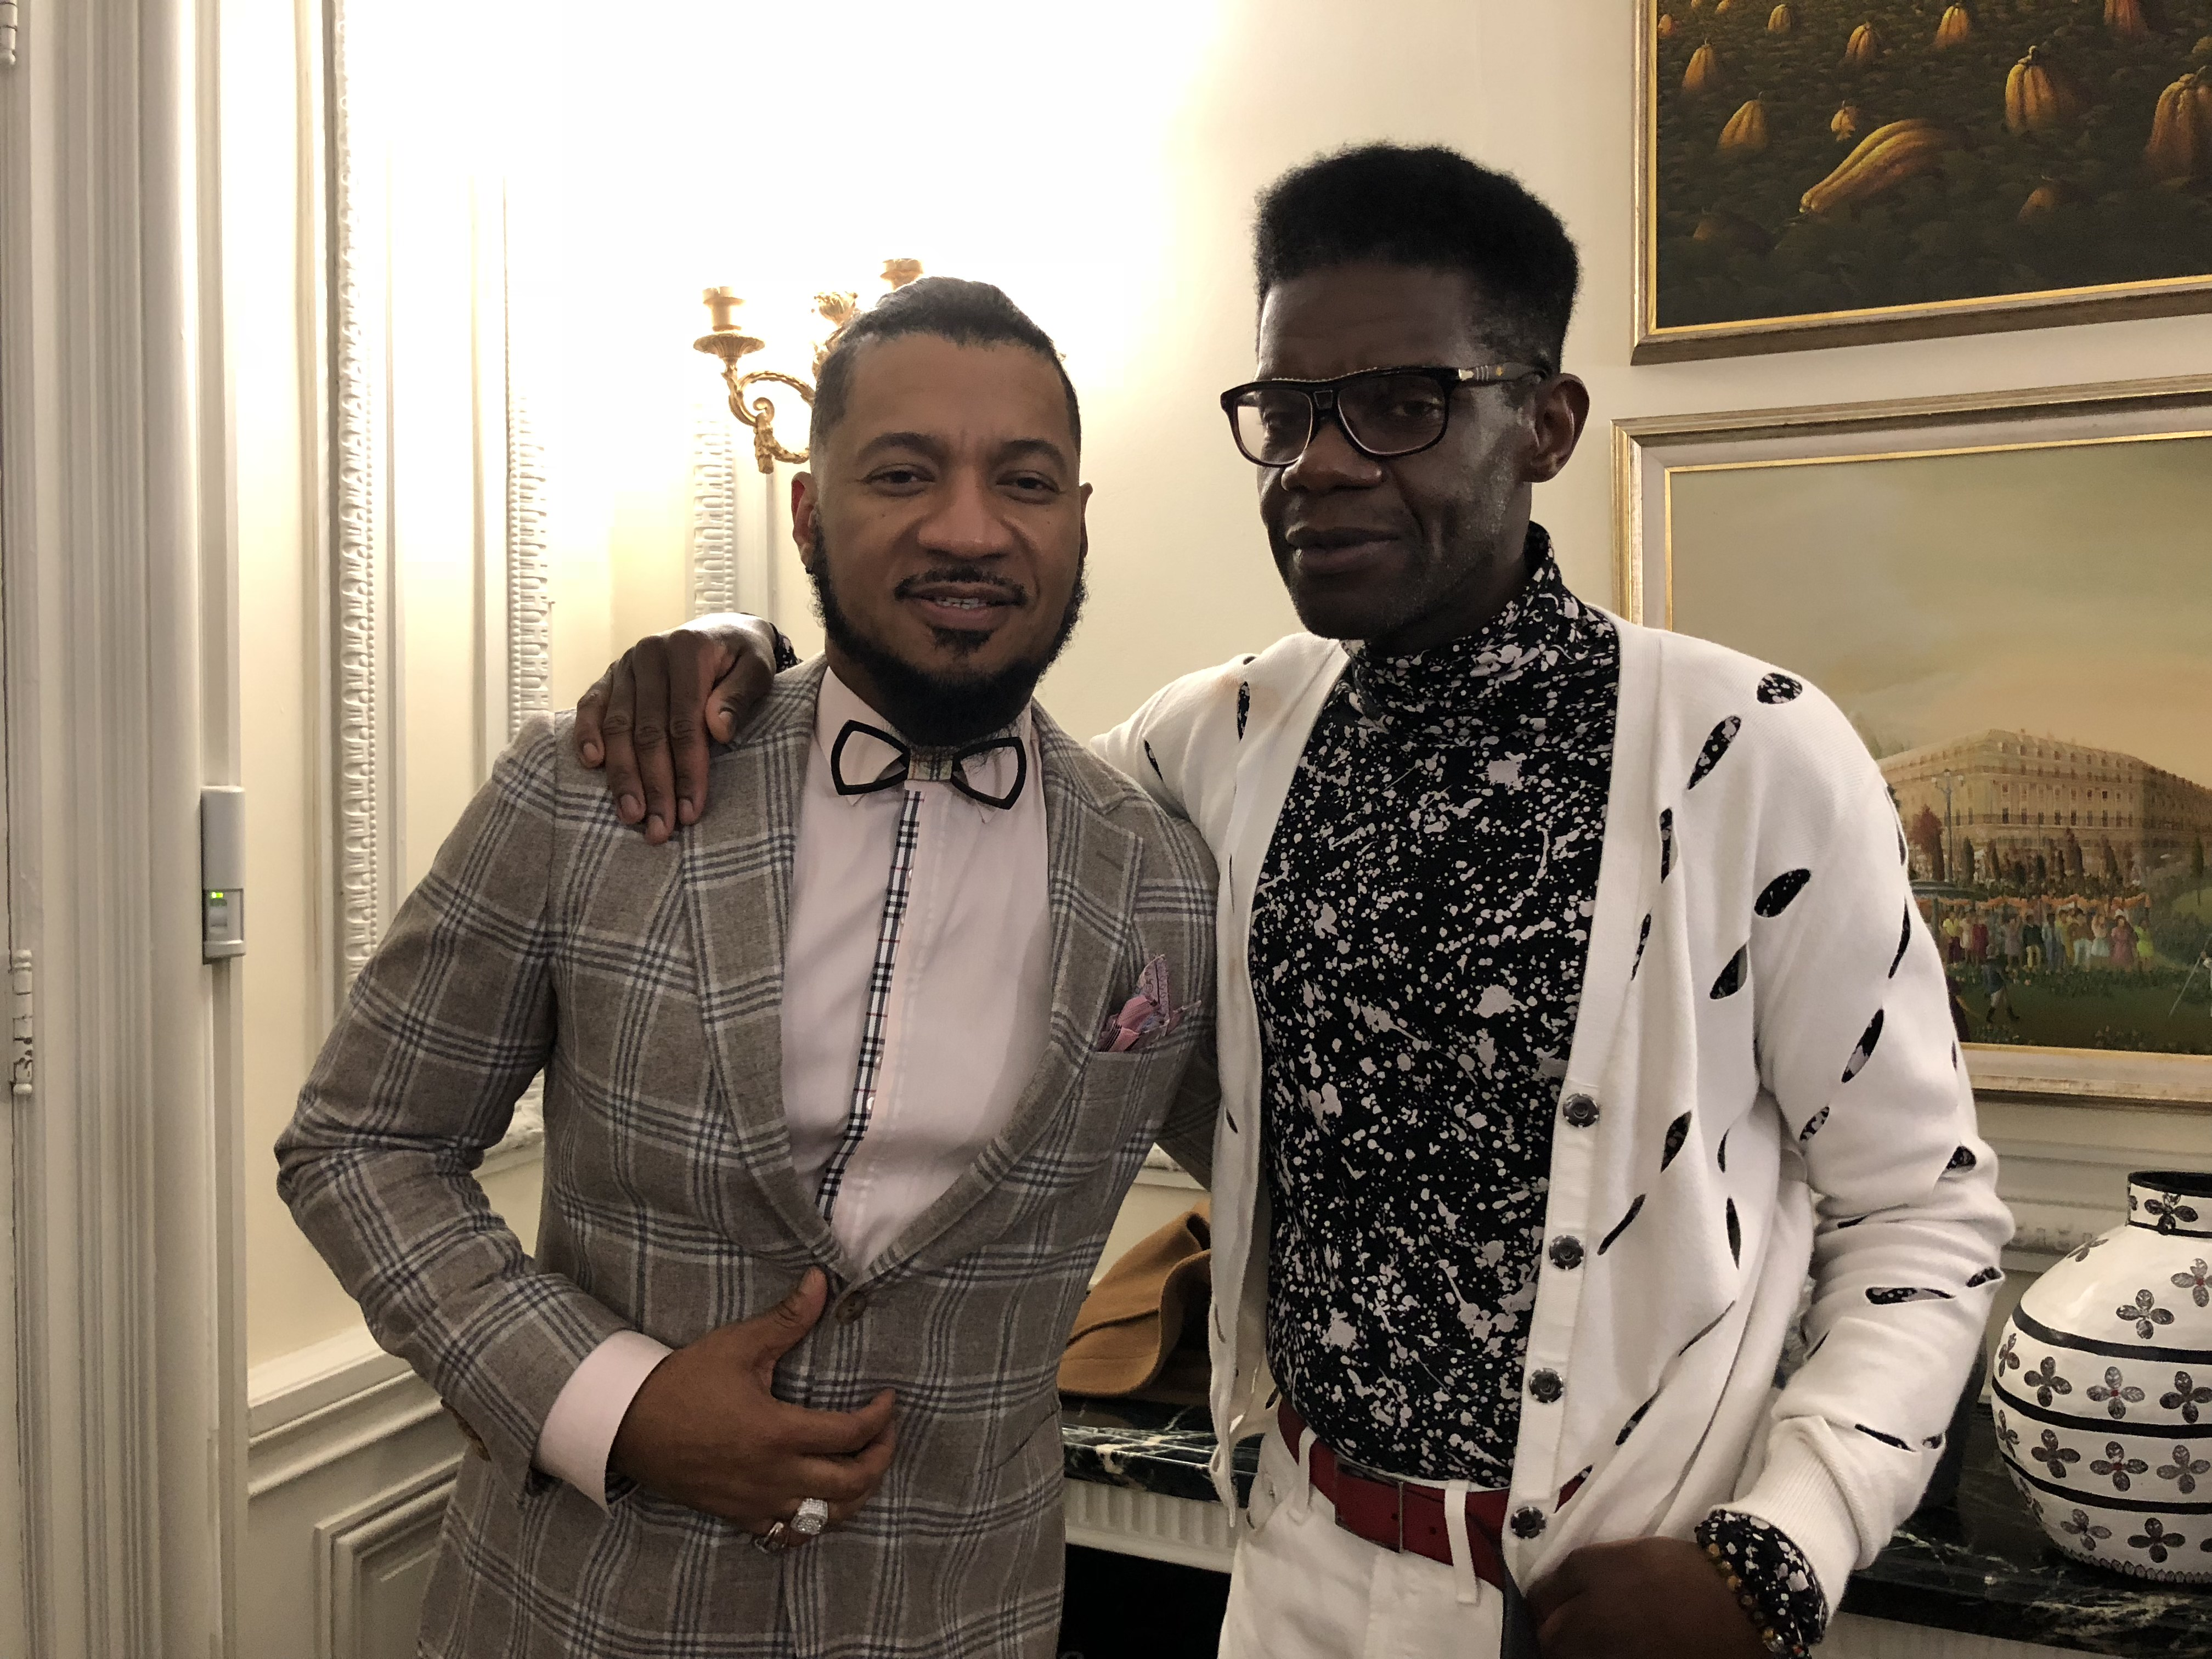 DC Fashion Week founder Ean Williams, left, with Haitian designer Victor Glemaud at the Haitian Embassy fashion event in Washington D.C., Feb. 23, 2018. (Photo: S. Lemaire / VOA)